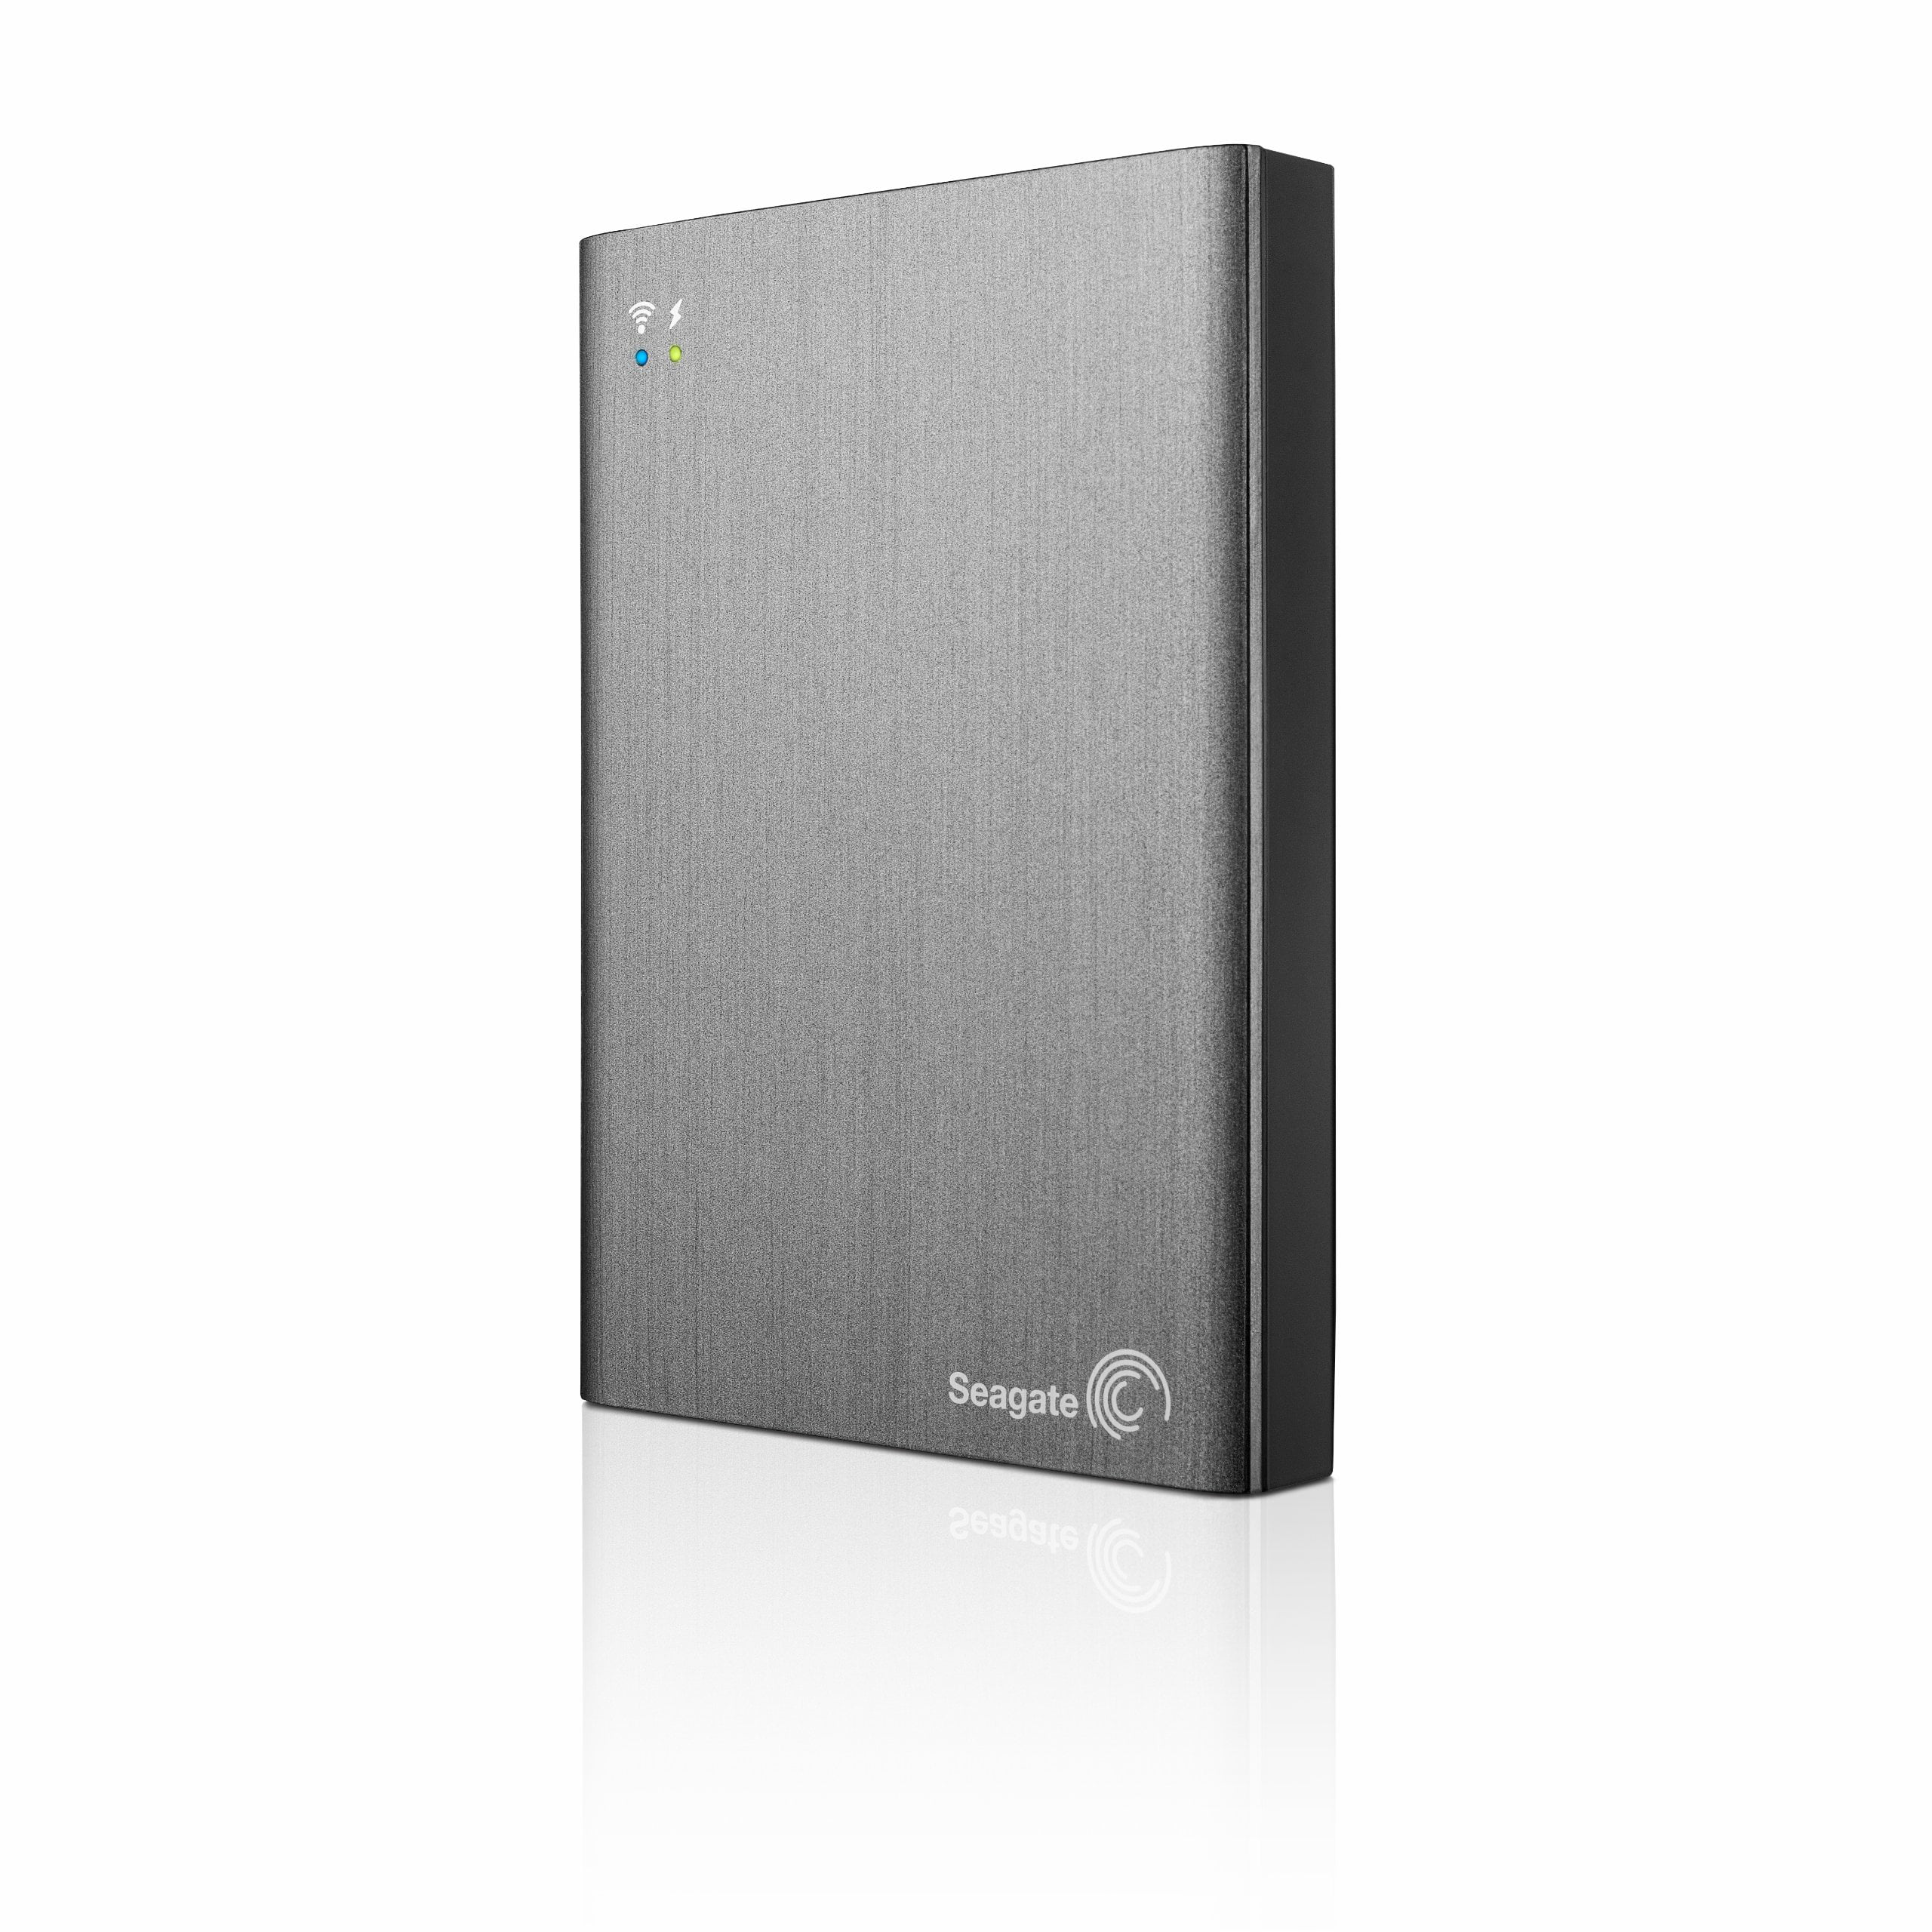 Seagate Wireless Plus Stcv2000100 2 Tb External Network Hard Drive Wireless Lan Usb 3.0 Gray (stcv2000100) by Seagate